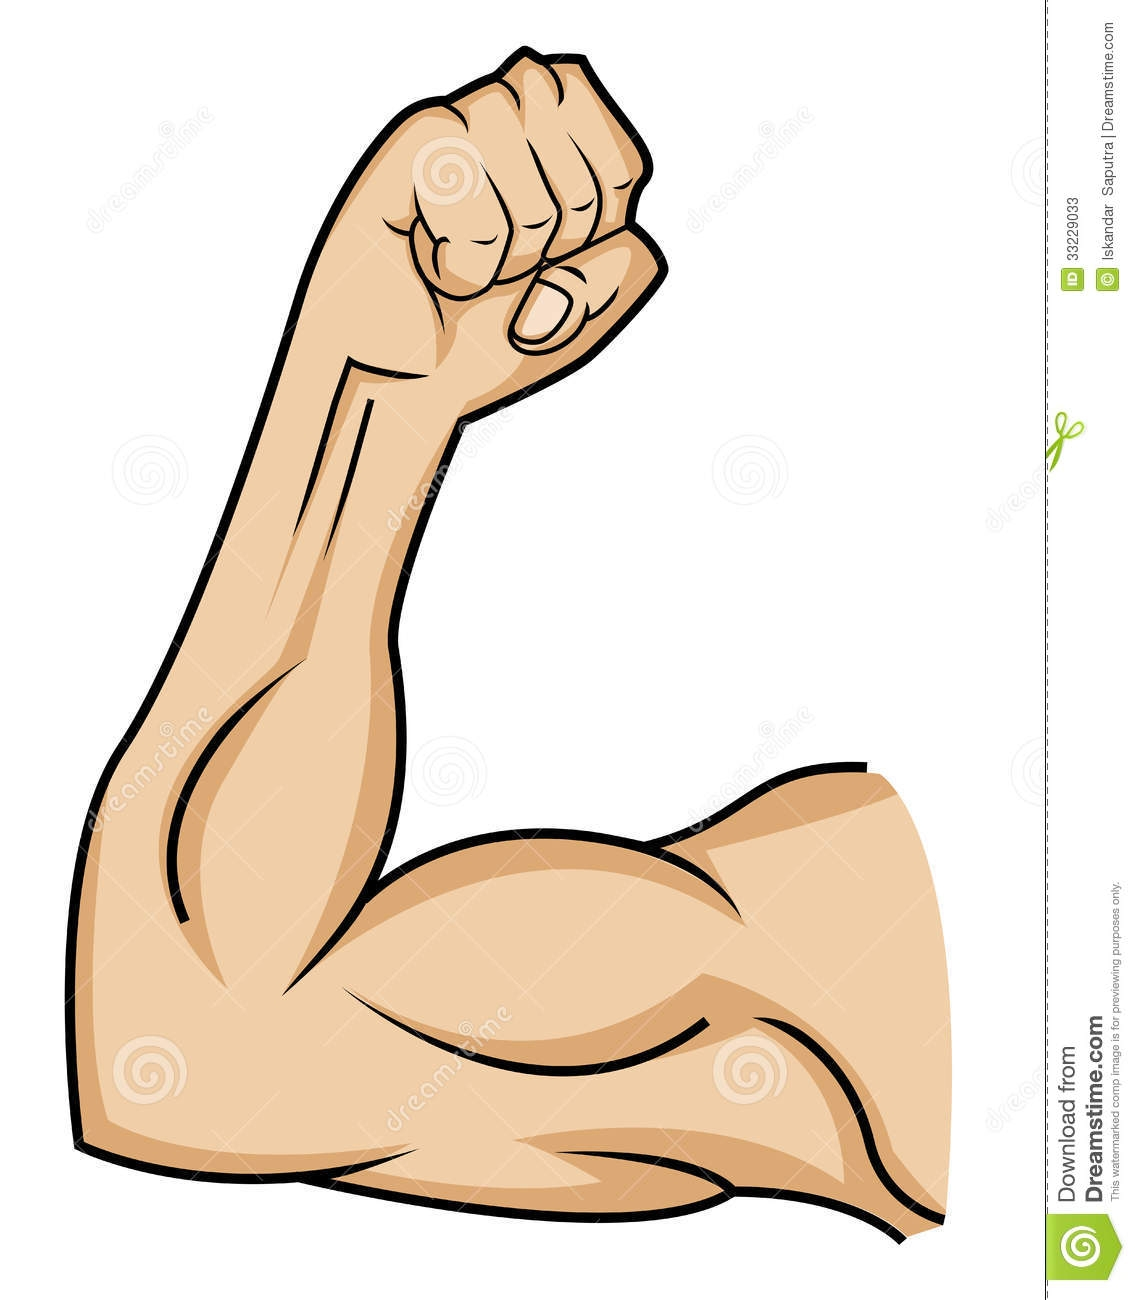 Free Muscle Cliparts, Download Free Clip Art, Free Clip Art on Clipart  Library